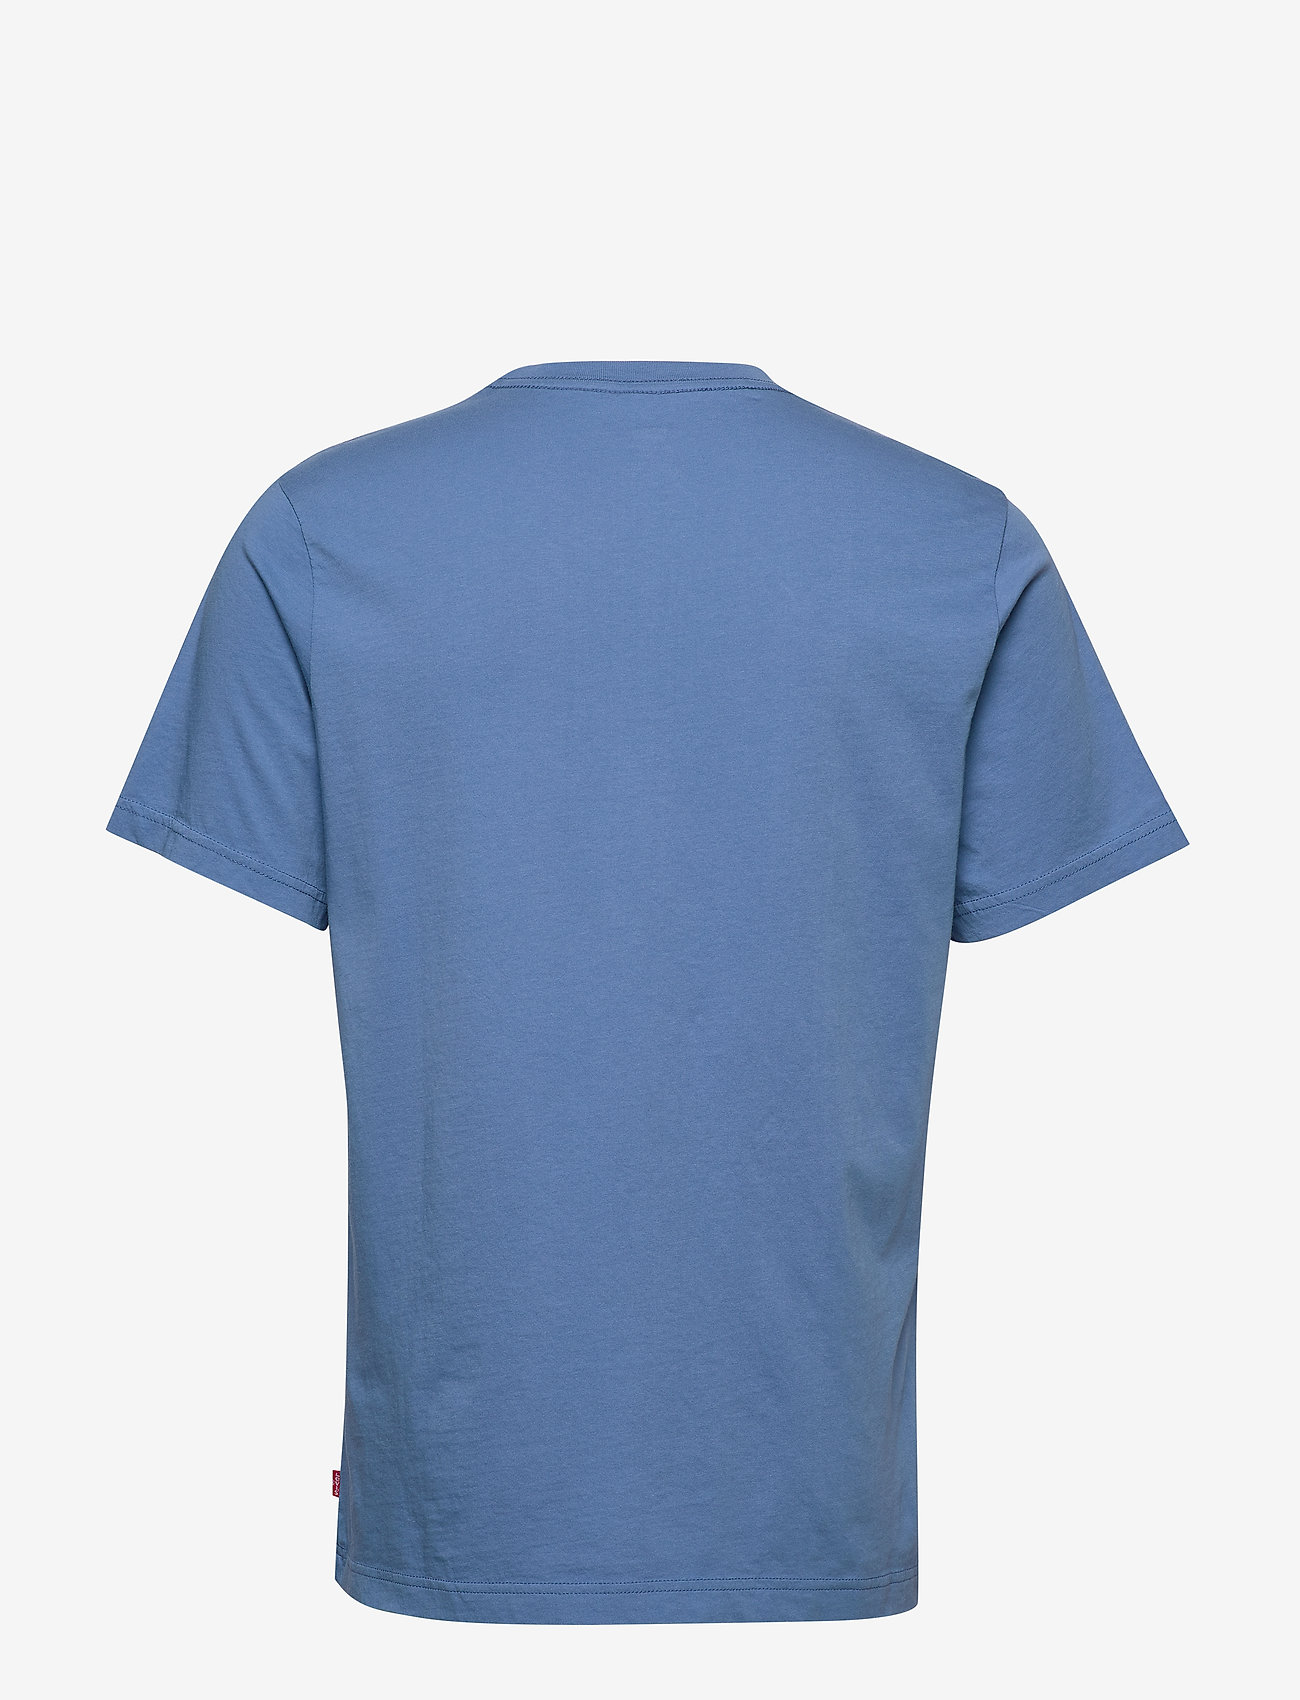 Relaxed Graphic Tee 90s Serif (Blues) (186.75 kr) - LEVI´S Men